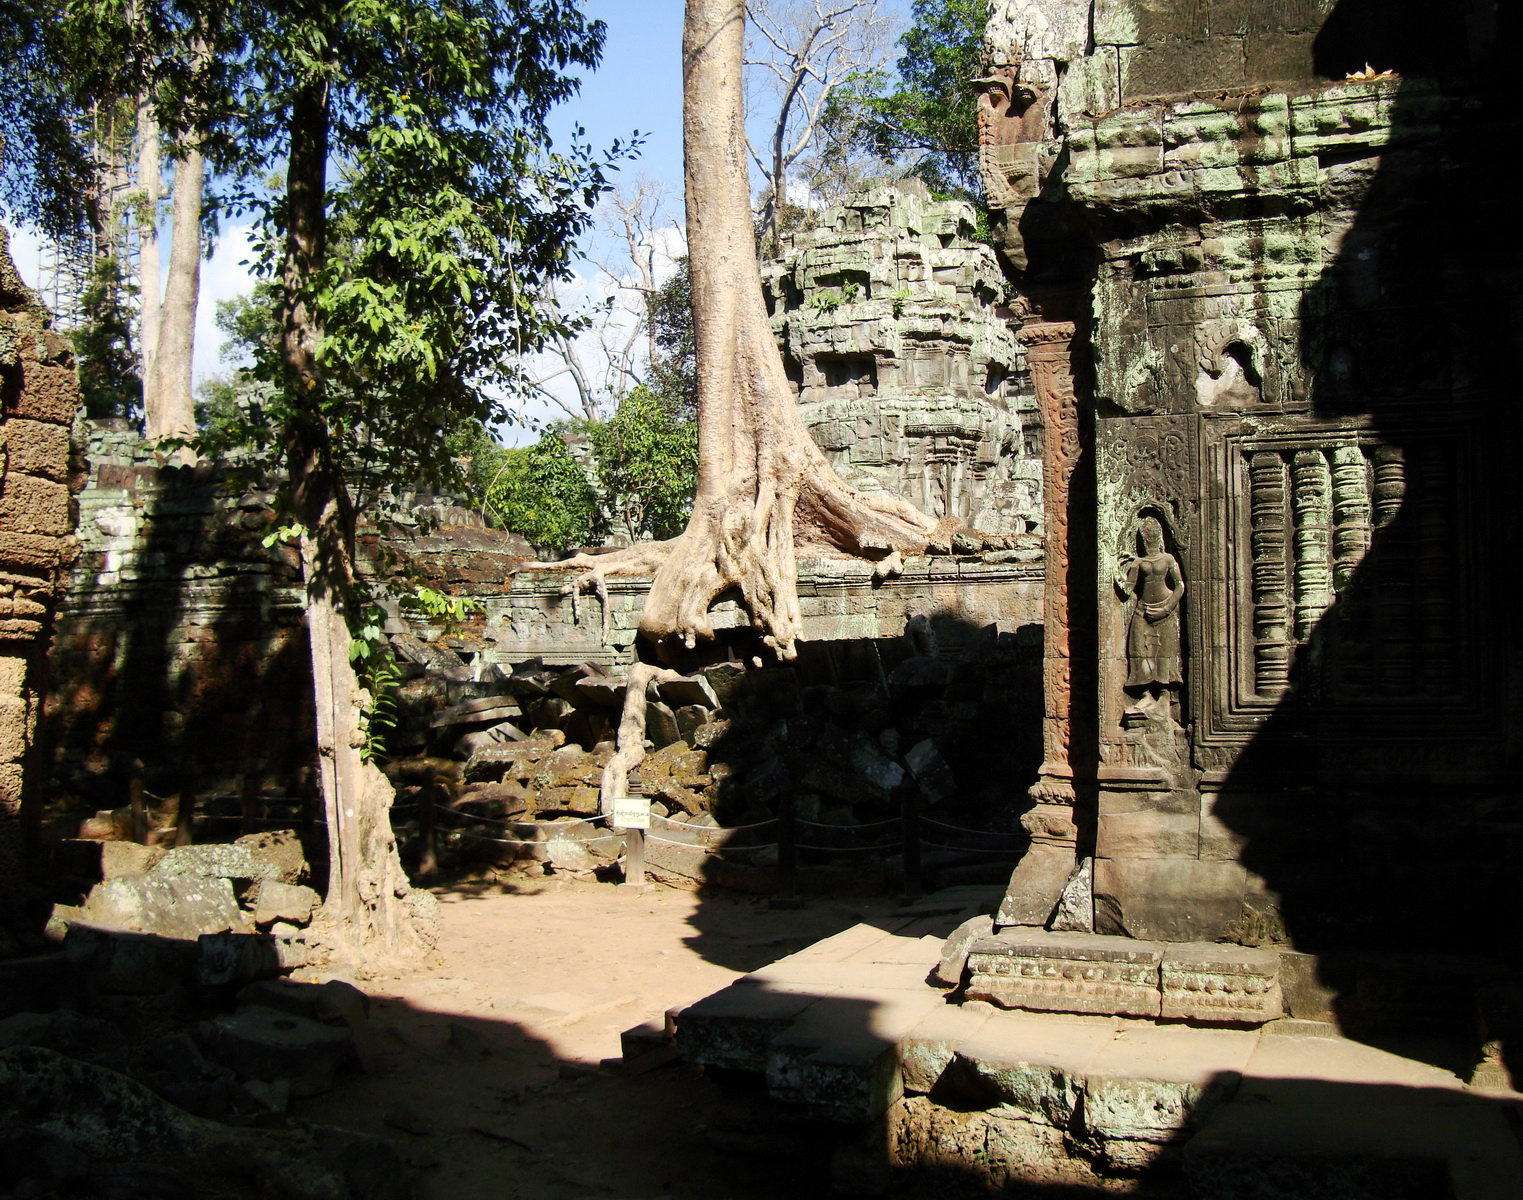 Ta Prohm Temple Tomb Raider giant iconic trees dwaf the gopura 11